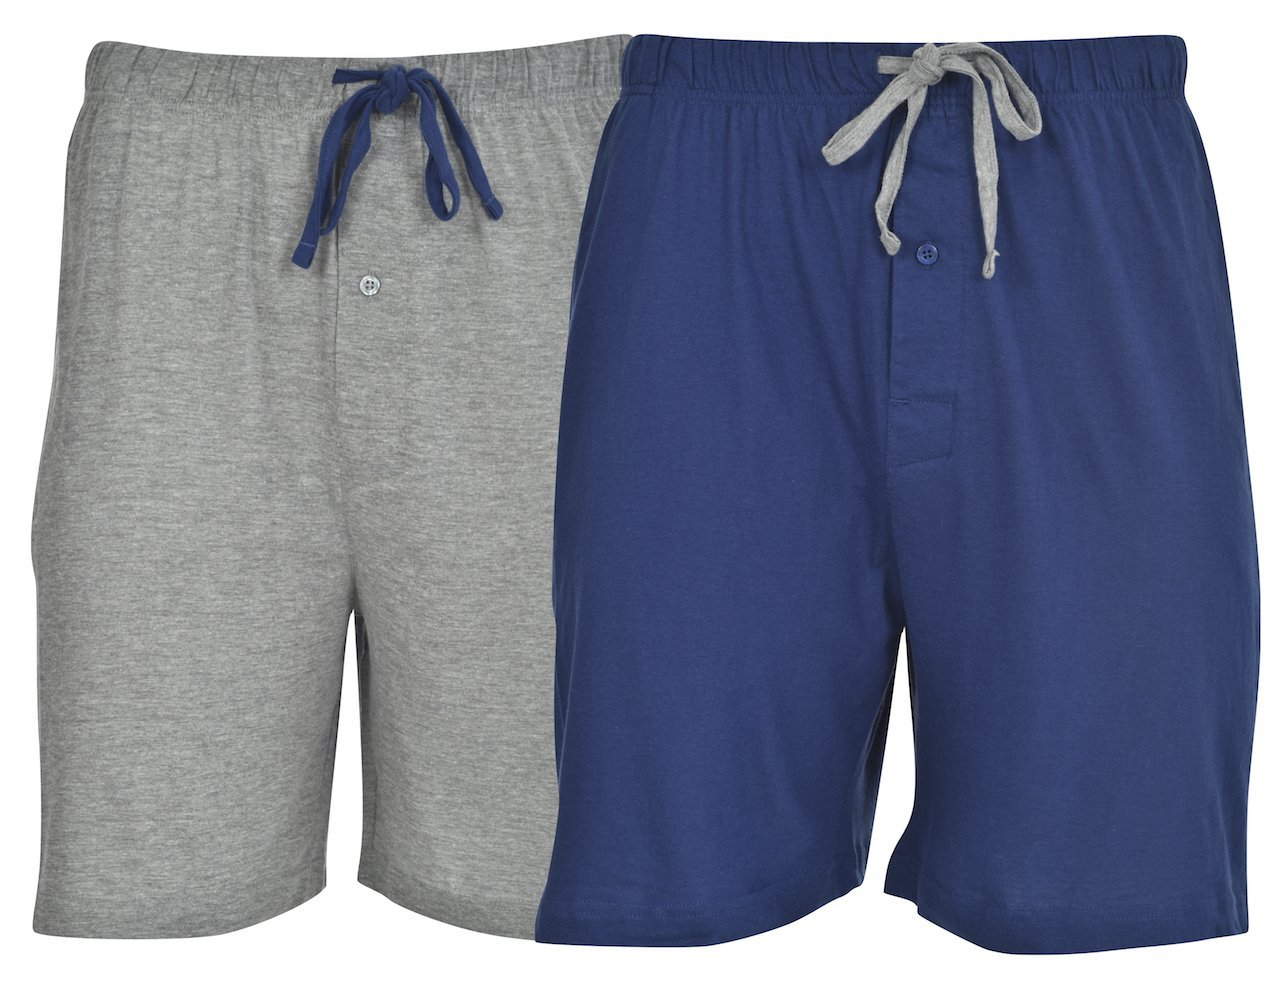 Hanes Men's 2-Pack Knit Short,Blue Depth/Active Grey Heather,Large by Hanes